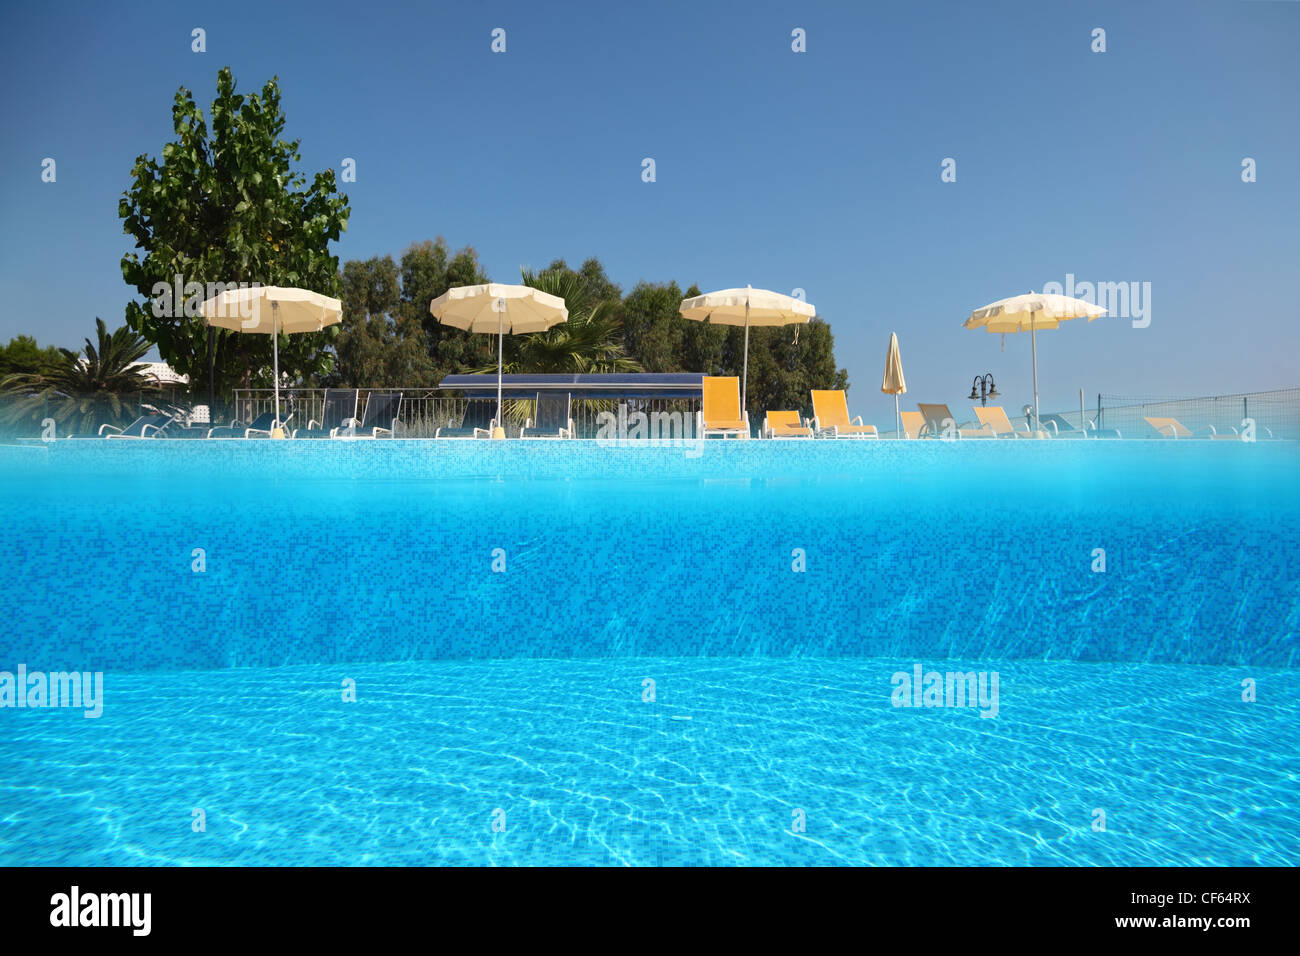 Pool Under Open Skies On Edge Of Which Deck Chairs Stand With Umbrellas,  Underwater Half Photo